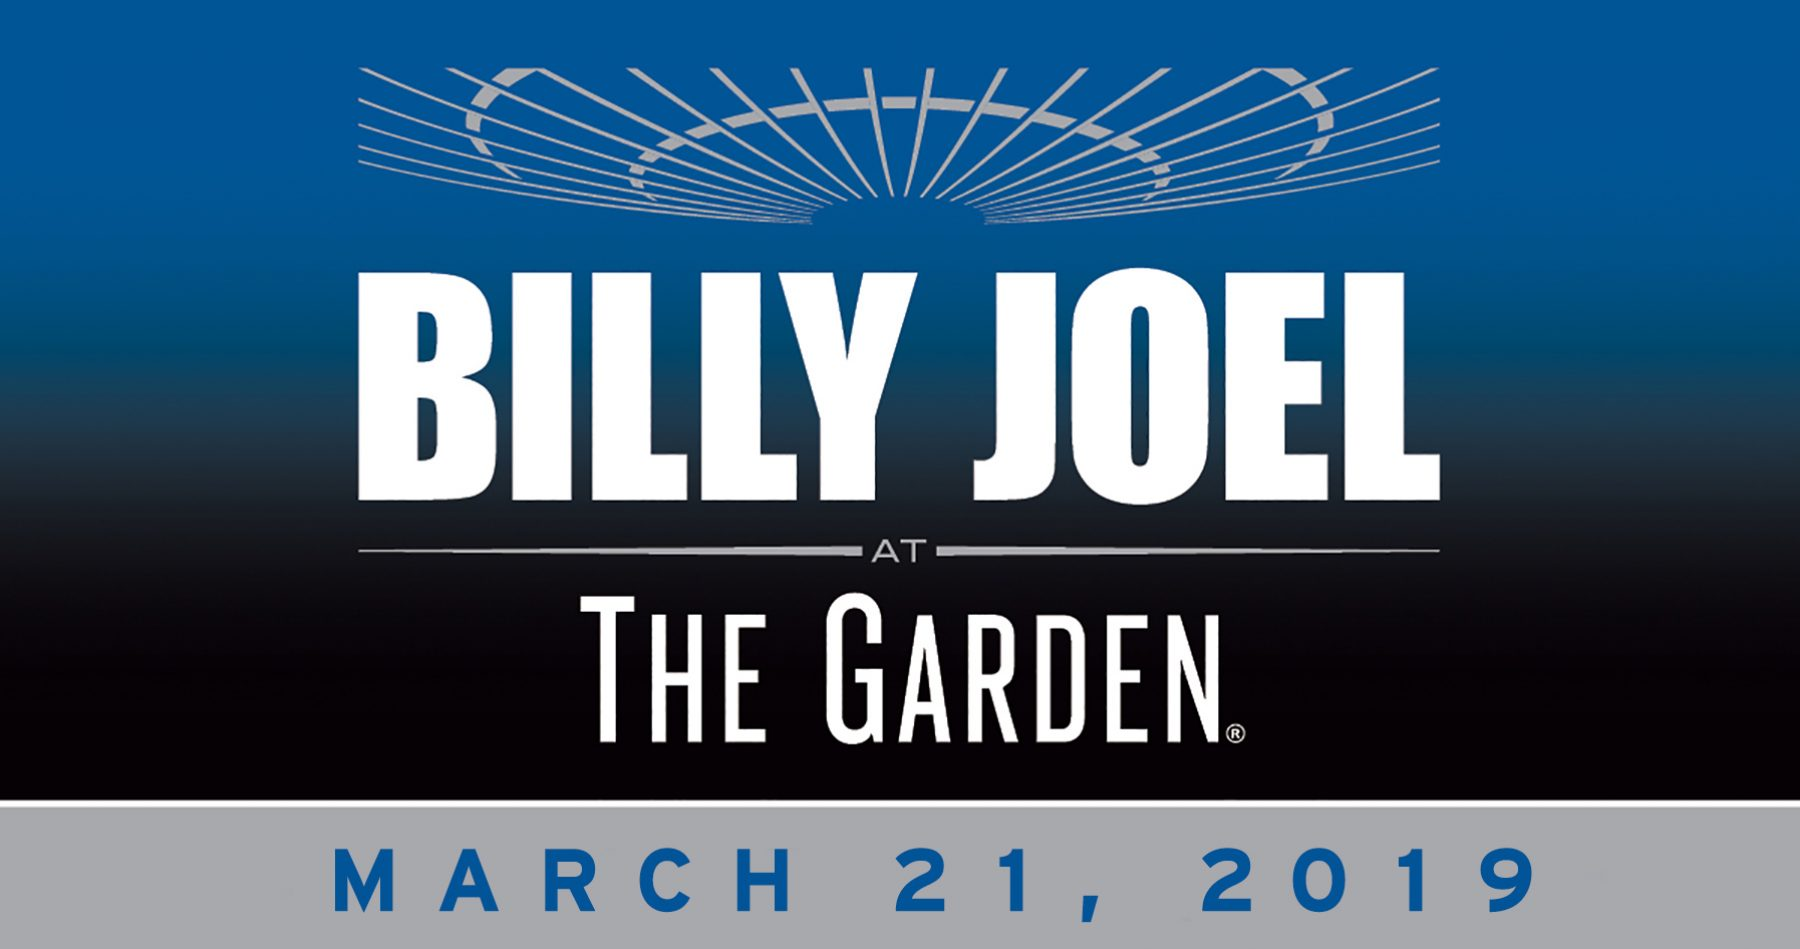 Billy Joel to play Madison Square Garden March 21, 2019